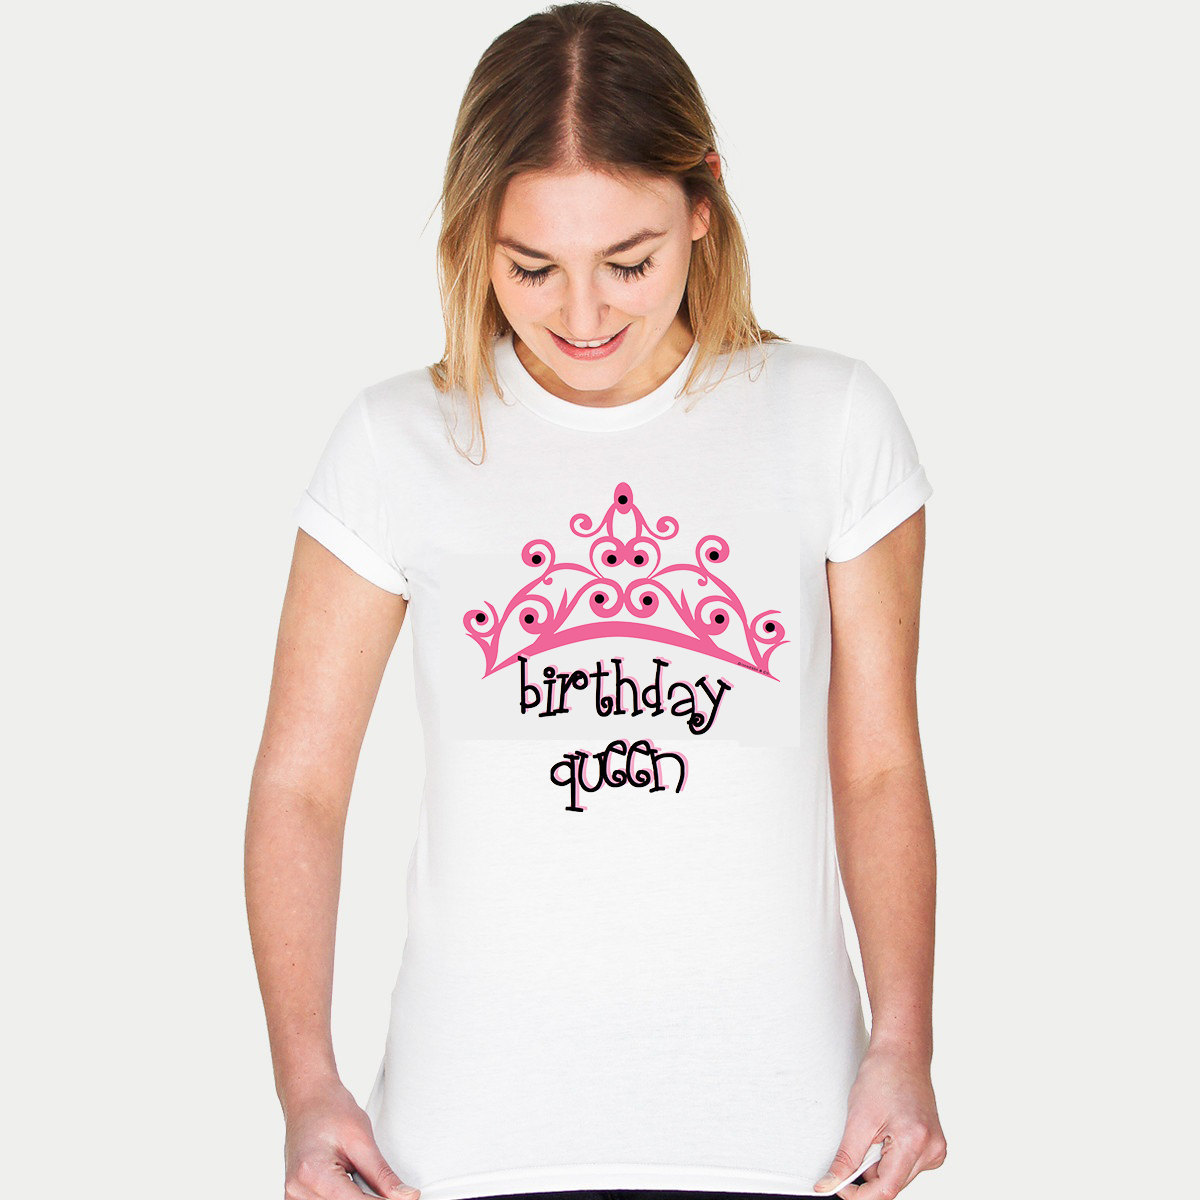 Primary image for NEW! Birthday Queen T-shirt (15-202)